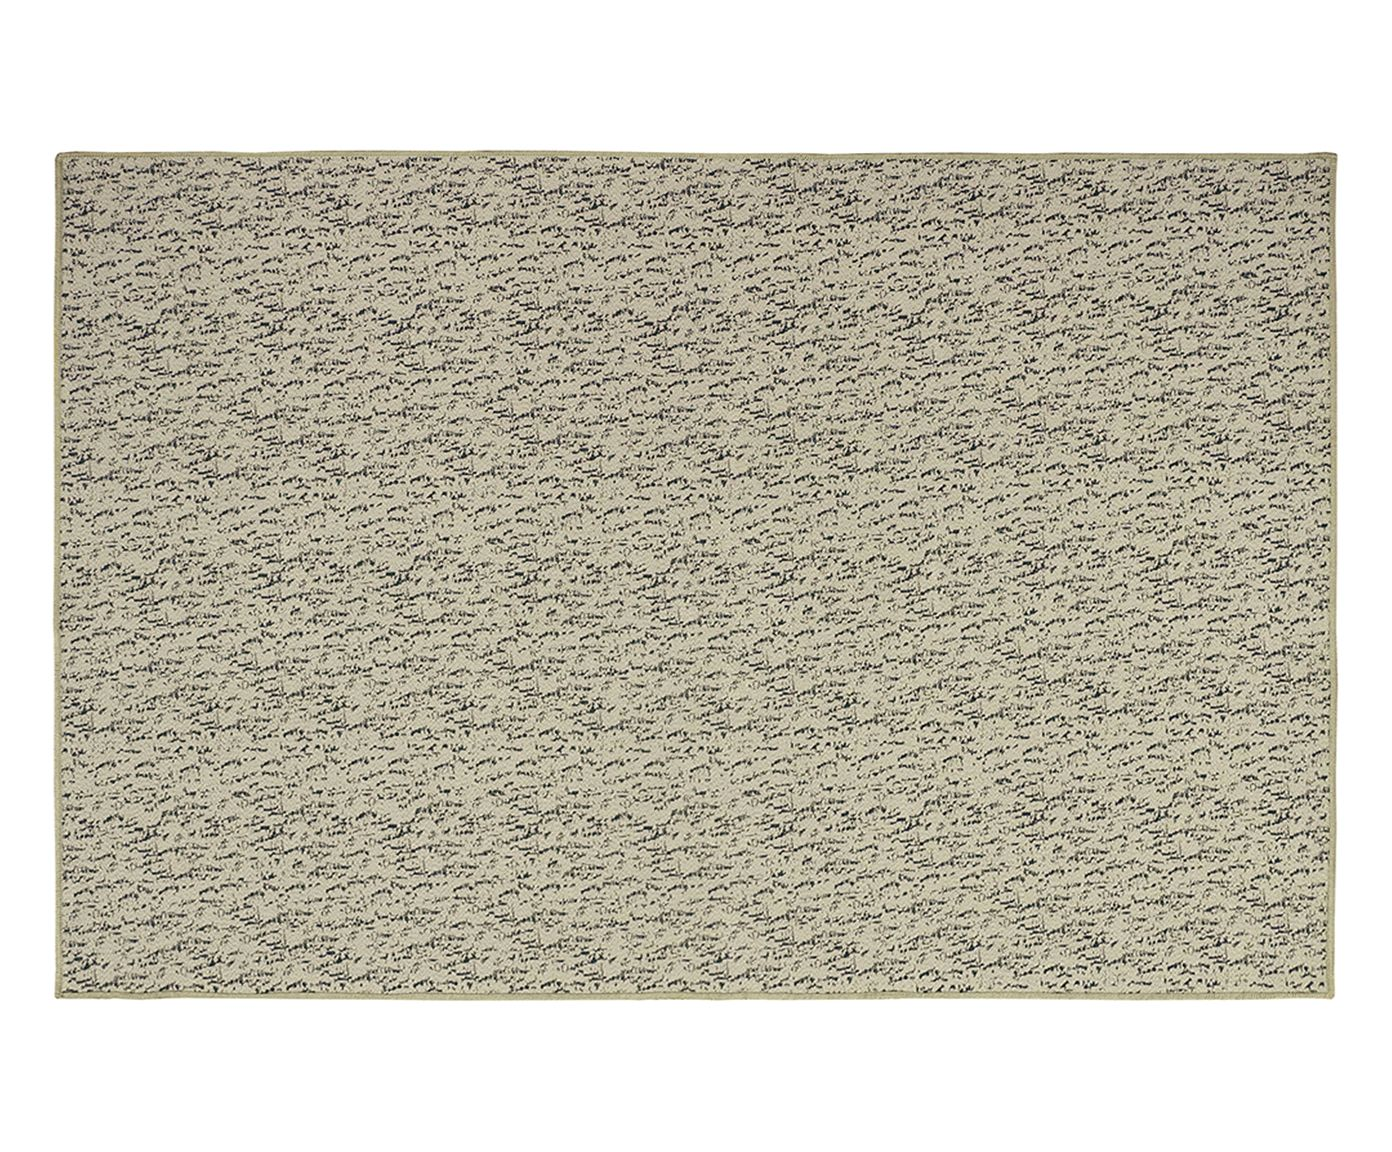 Tapete Facile Sombras Bege - 200X250cm   Westwing.com.br